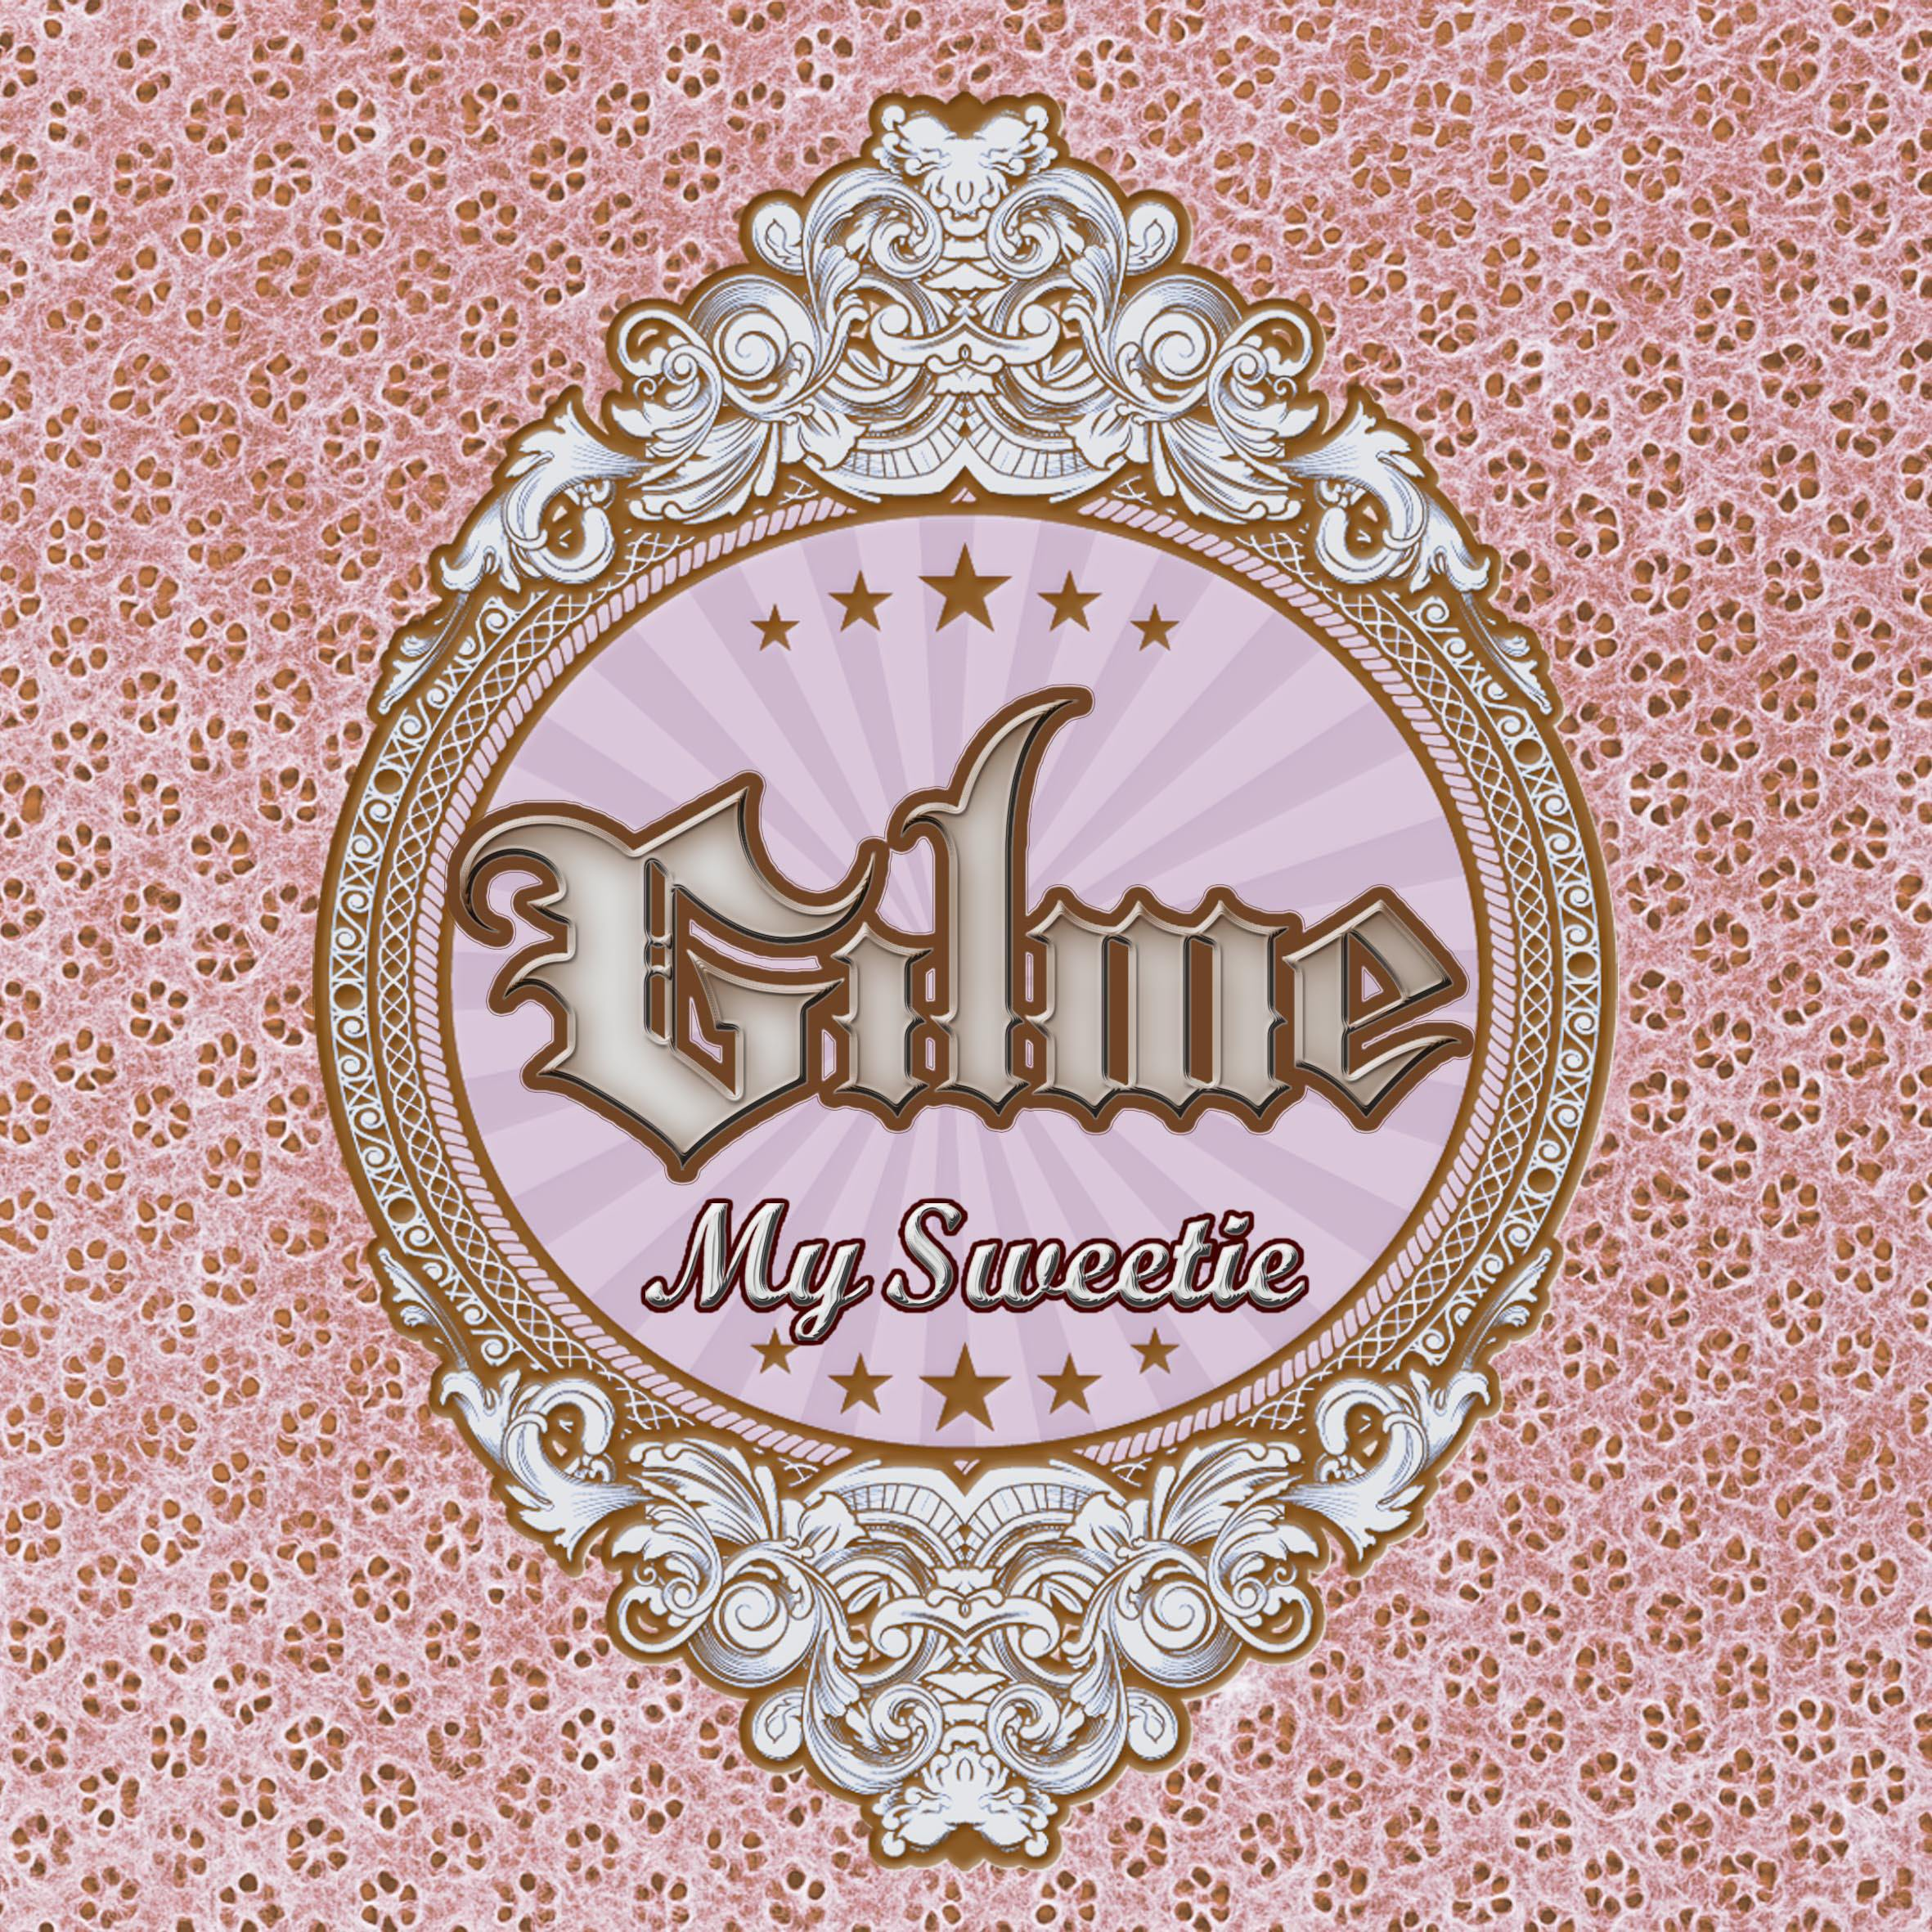 [Single] Gilme - My Sweetie